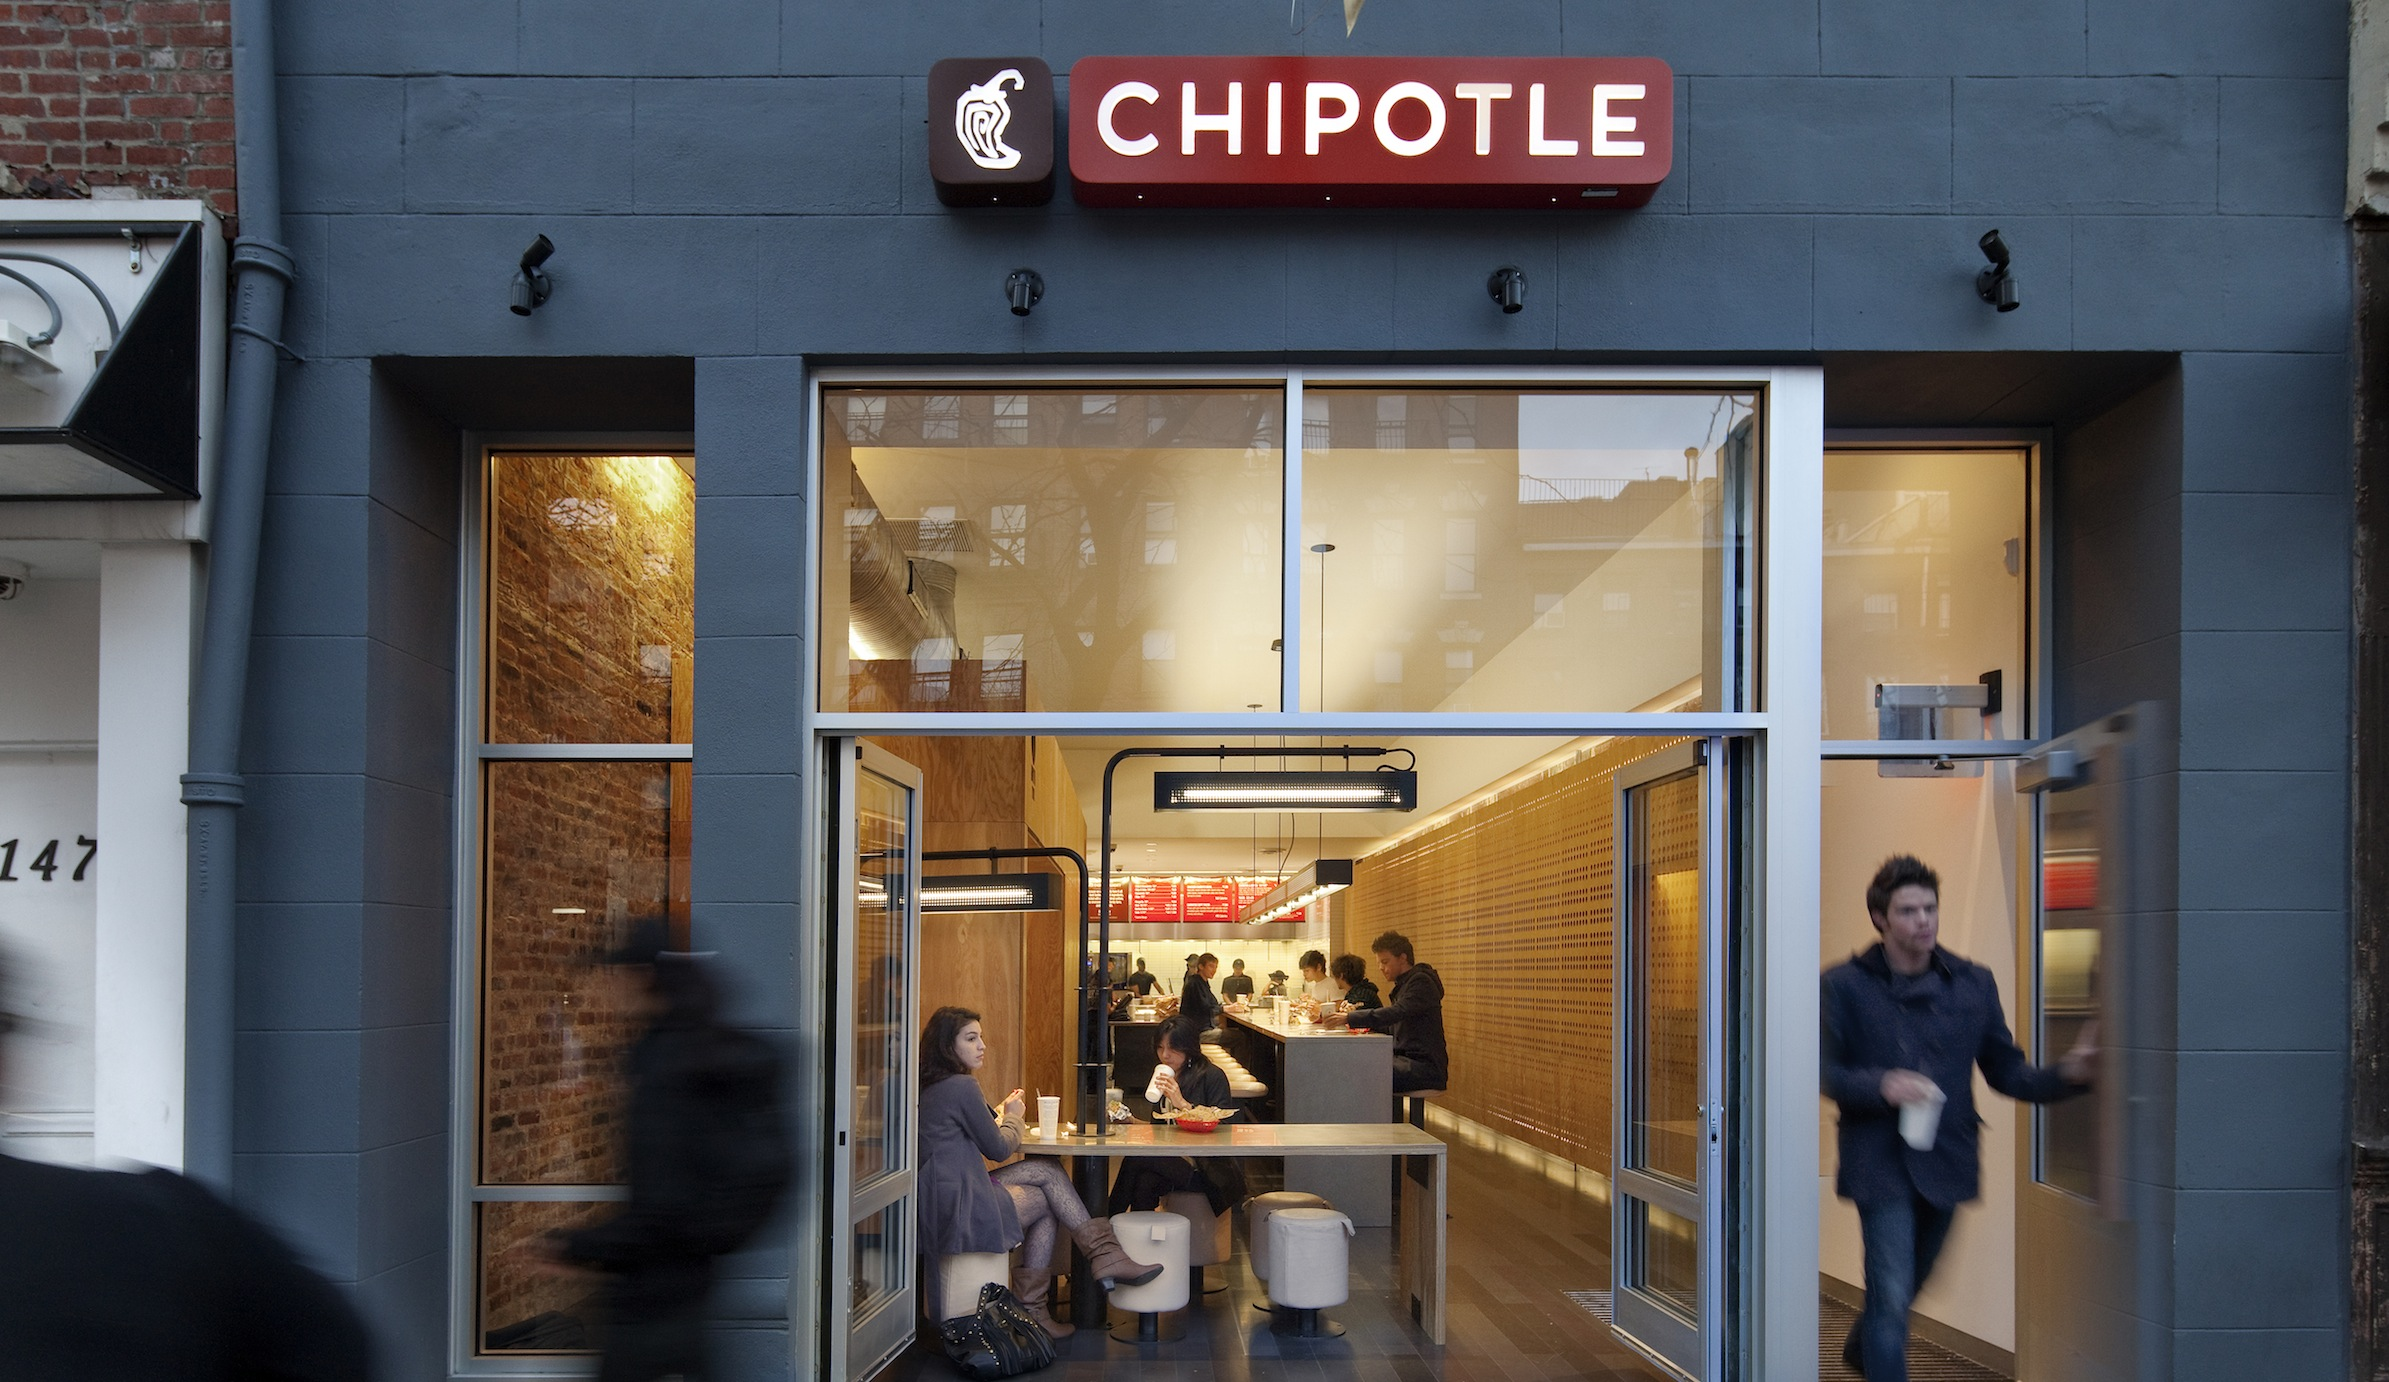 CHIPOTLE RESTAURANT CHELSEA Location: New York NY, Architect: Outfit Architecture